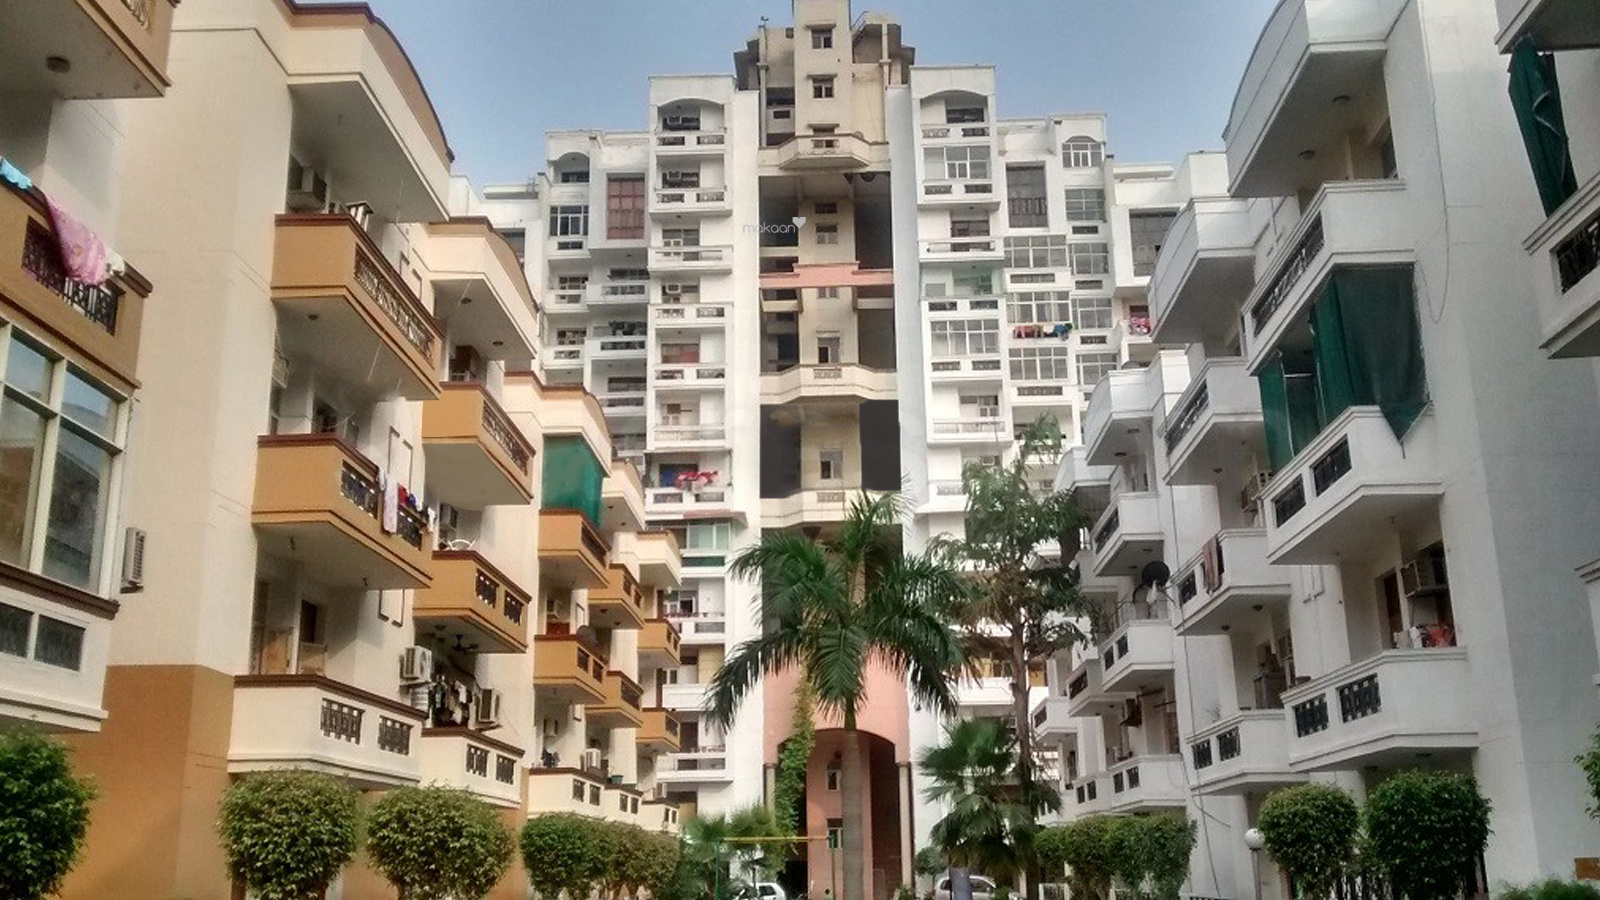 1176 sq ft 2BHK 2BHK+2T (1,176 sq ft) Property By ALFATECH REALTORS In Edens, Sector Alpha